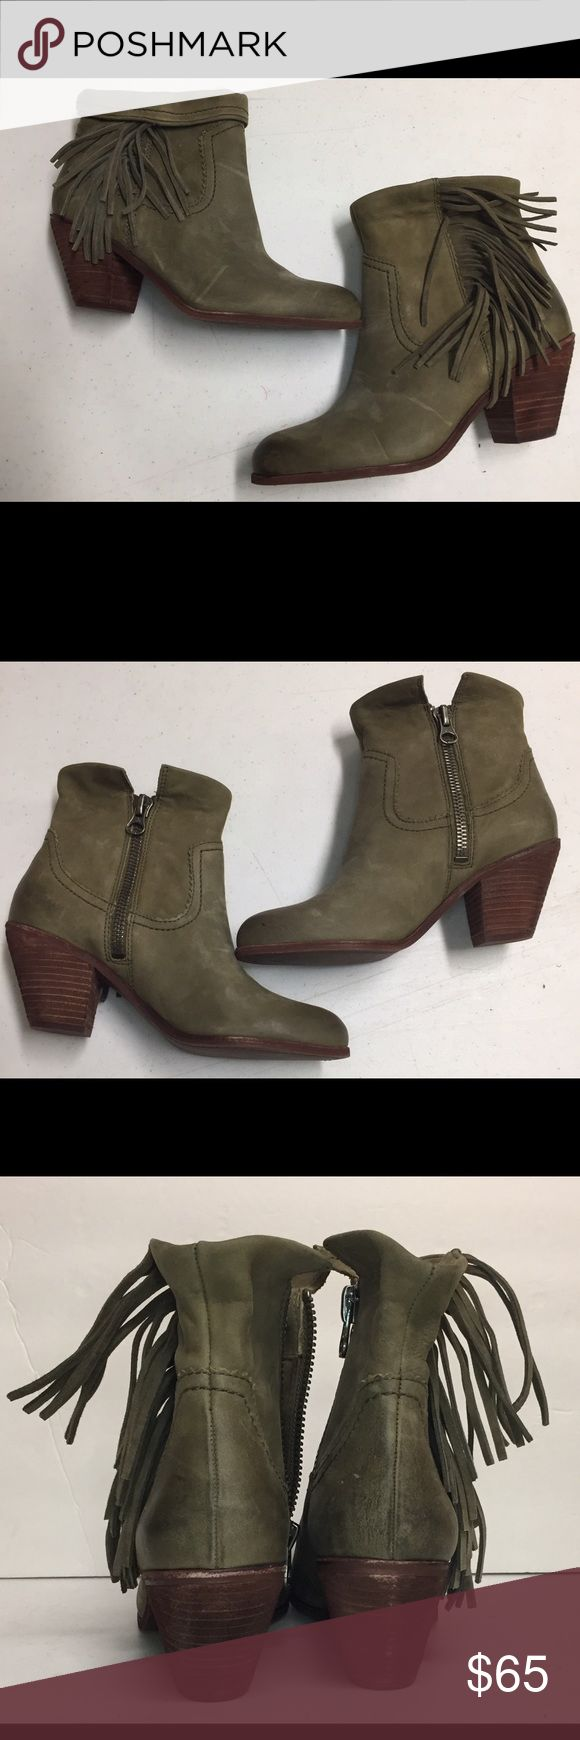 Sam Edelman Louie Fringe Booties Size 8.5 Sam Edelman Louie Fringe Booties Size 8.5. Gently used with minor scuffing see photos. Sam Edelman Shoes Ankle Boots & Booties